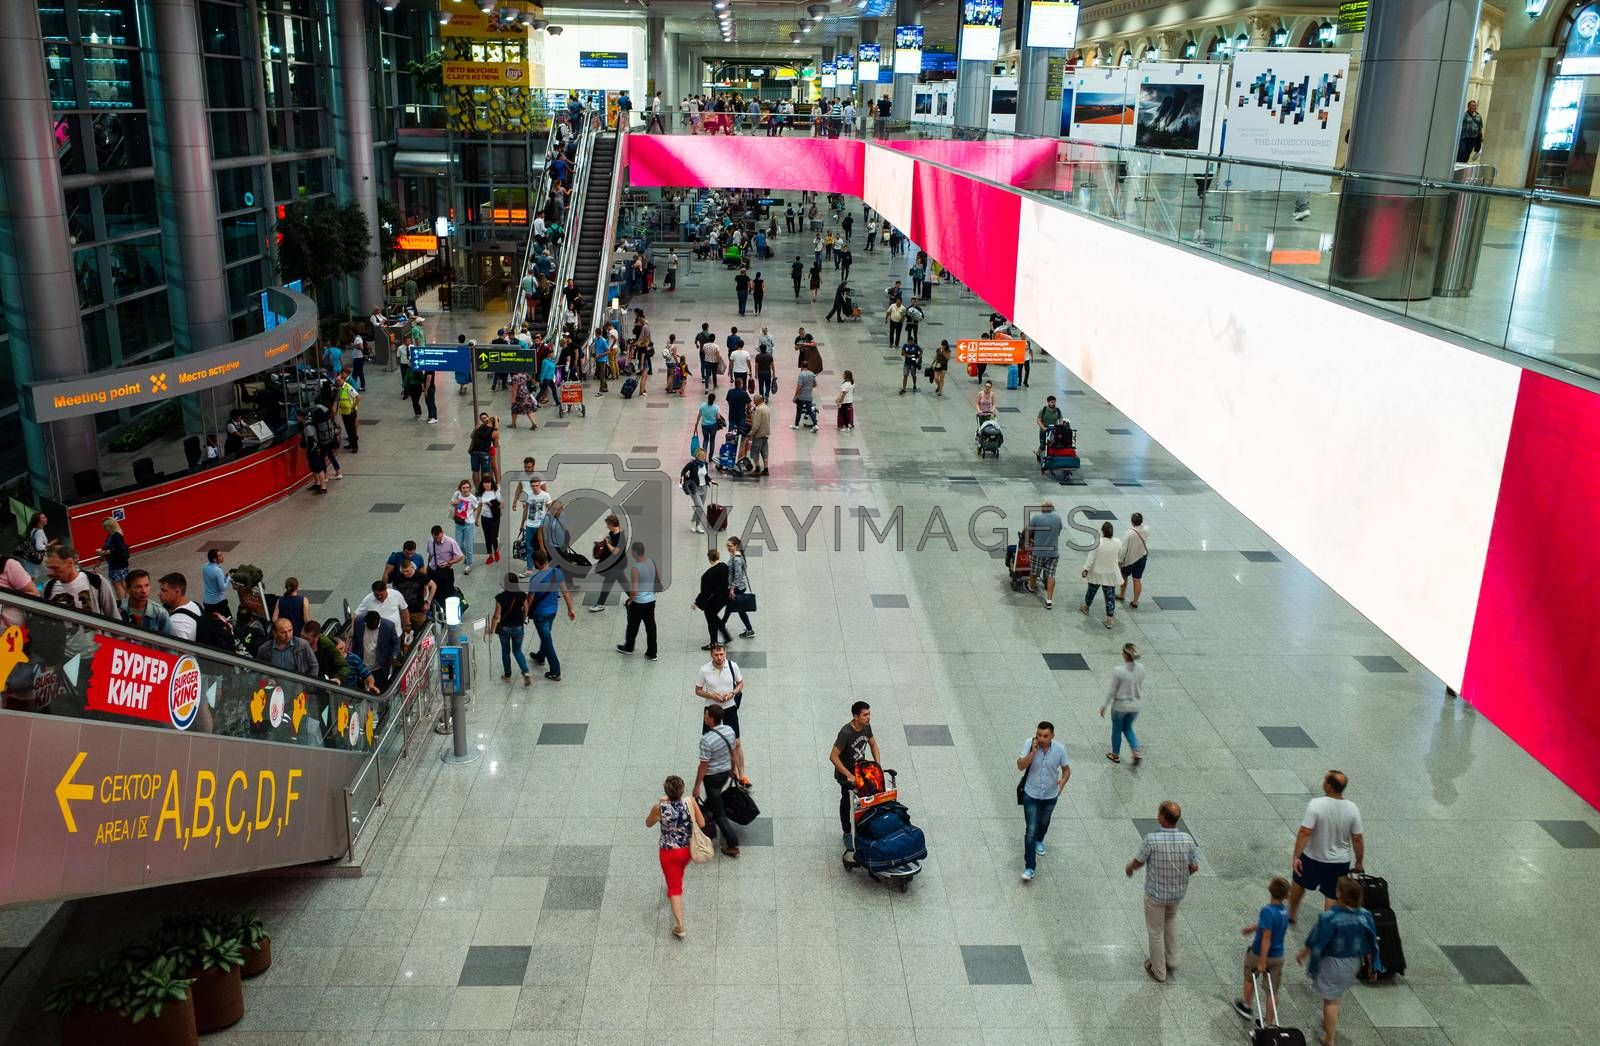 29 July 2018 Moscow region, Russia. Passengers at Domodedovo airport in Moscow.